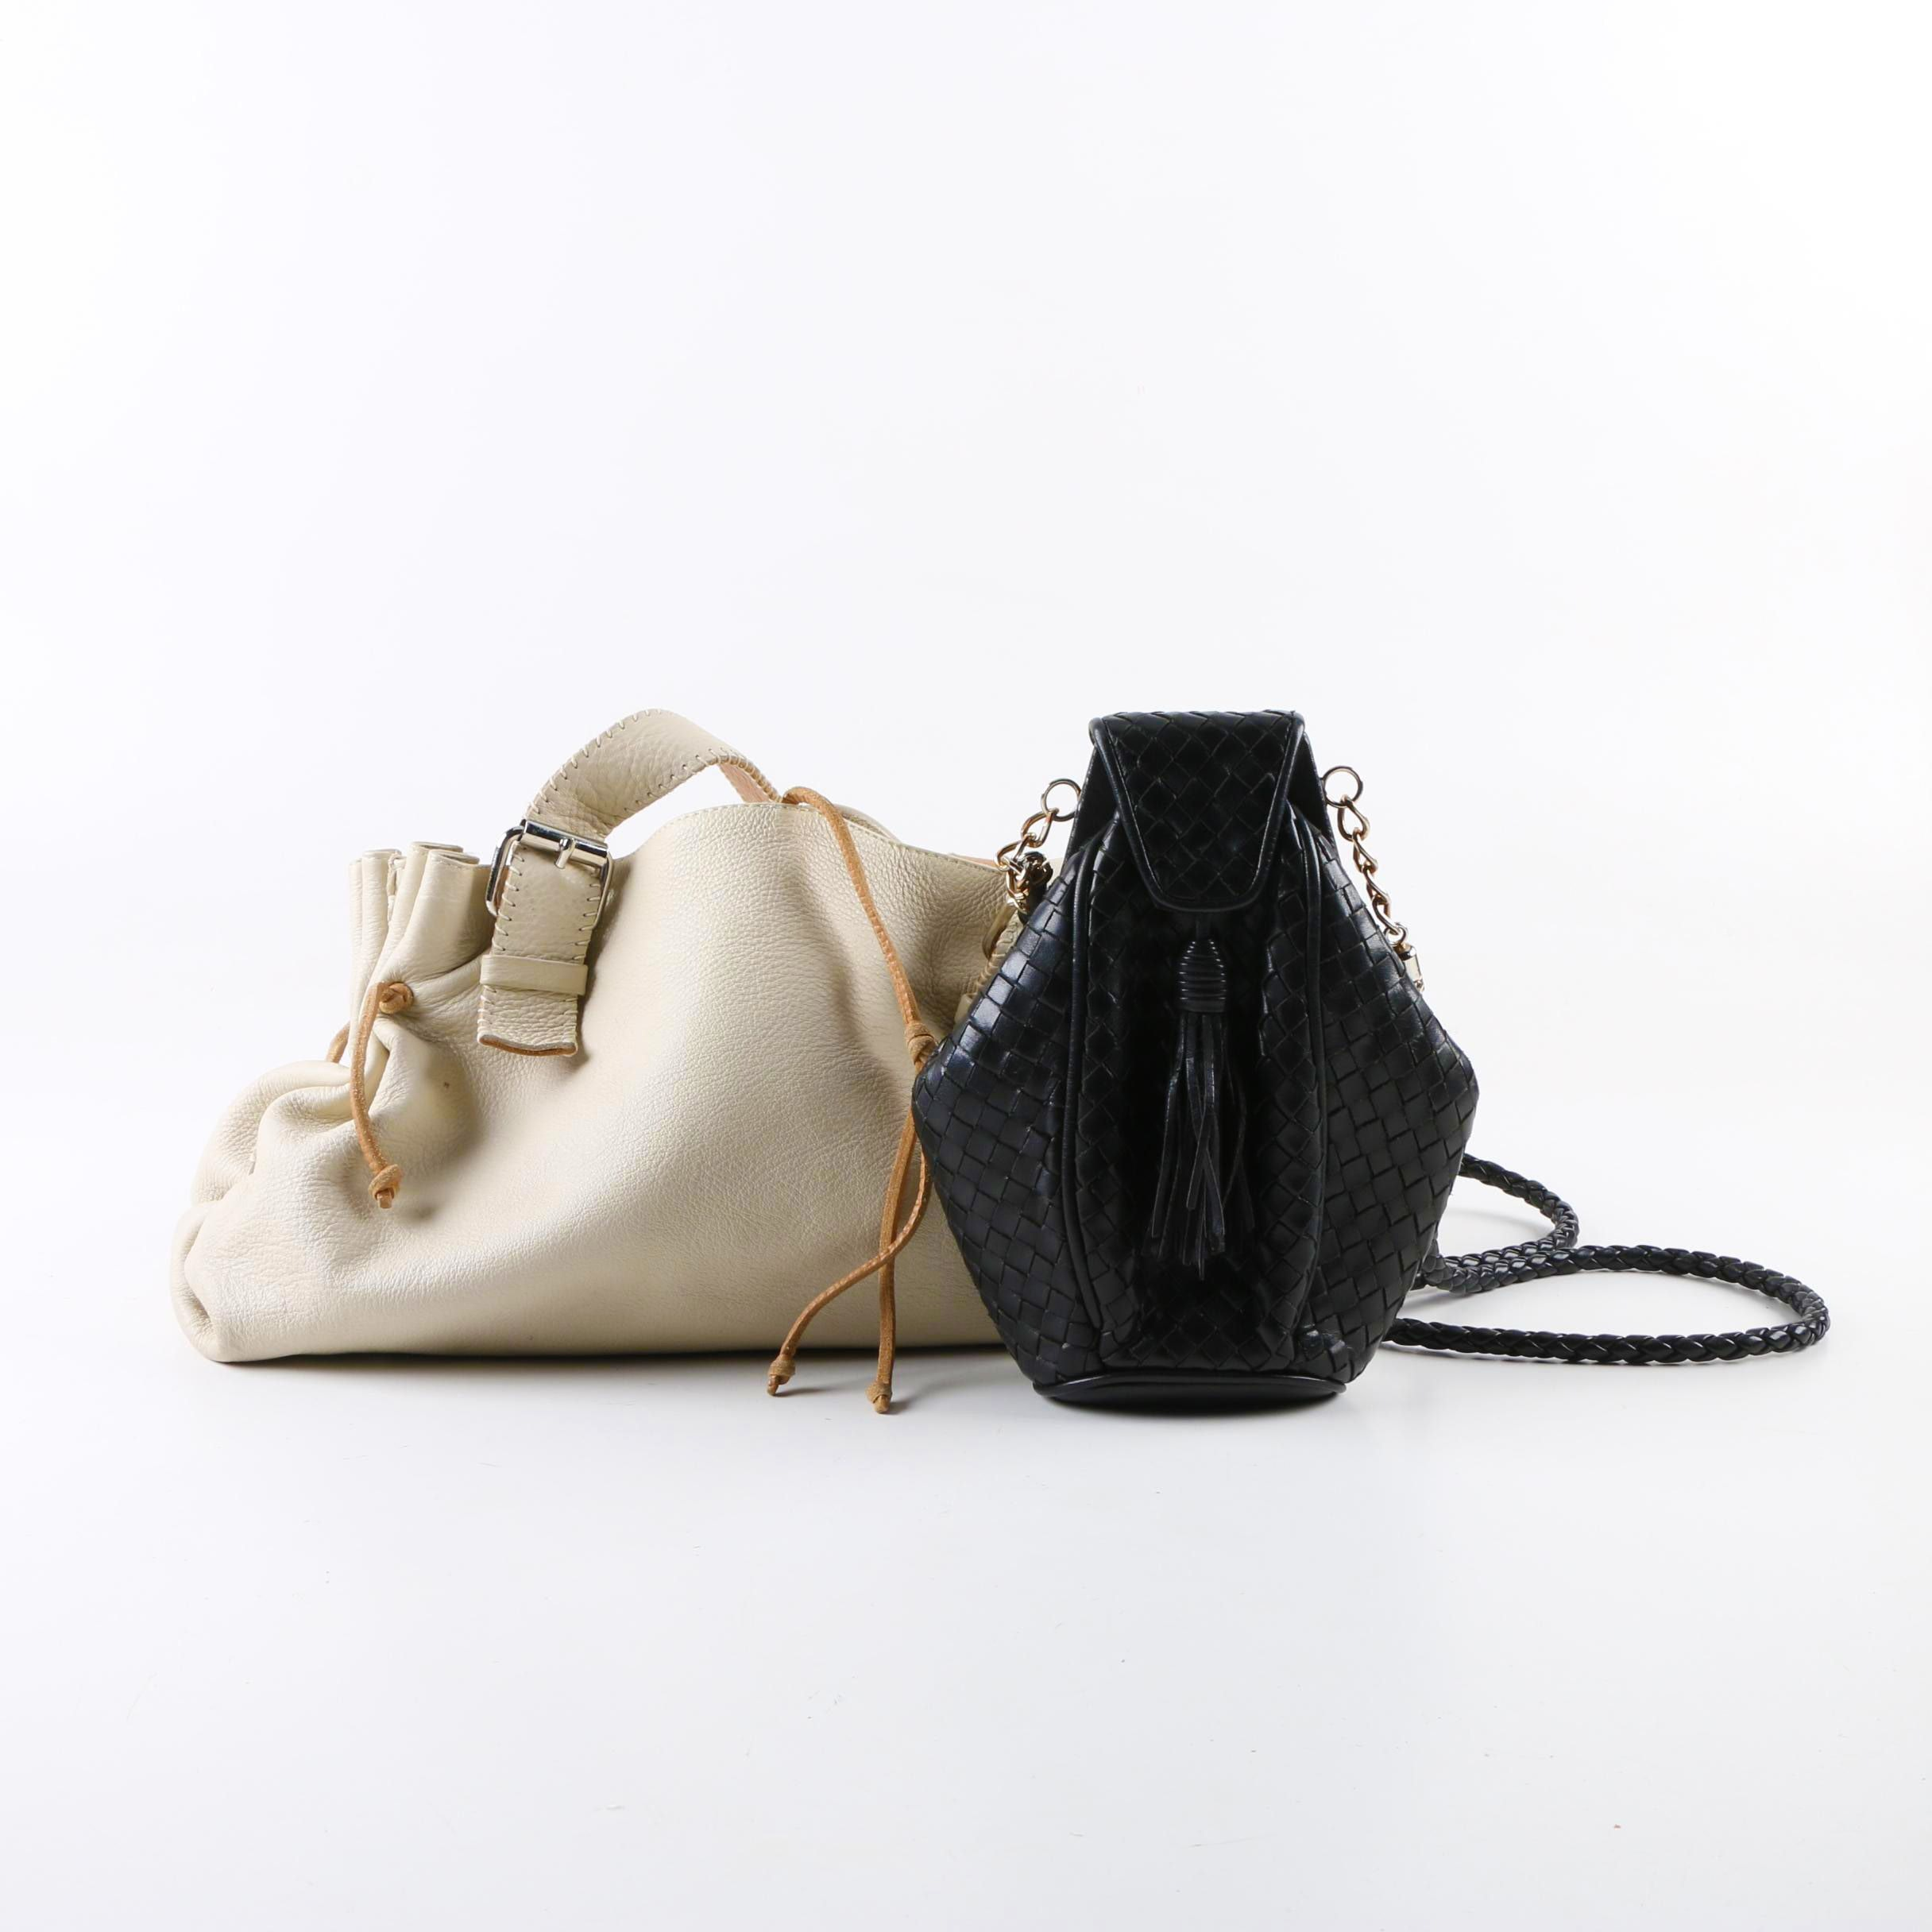 Leather Handbags Including Carla Mancini Satchel and Black Woven Frame Bag